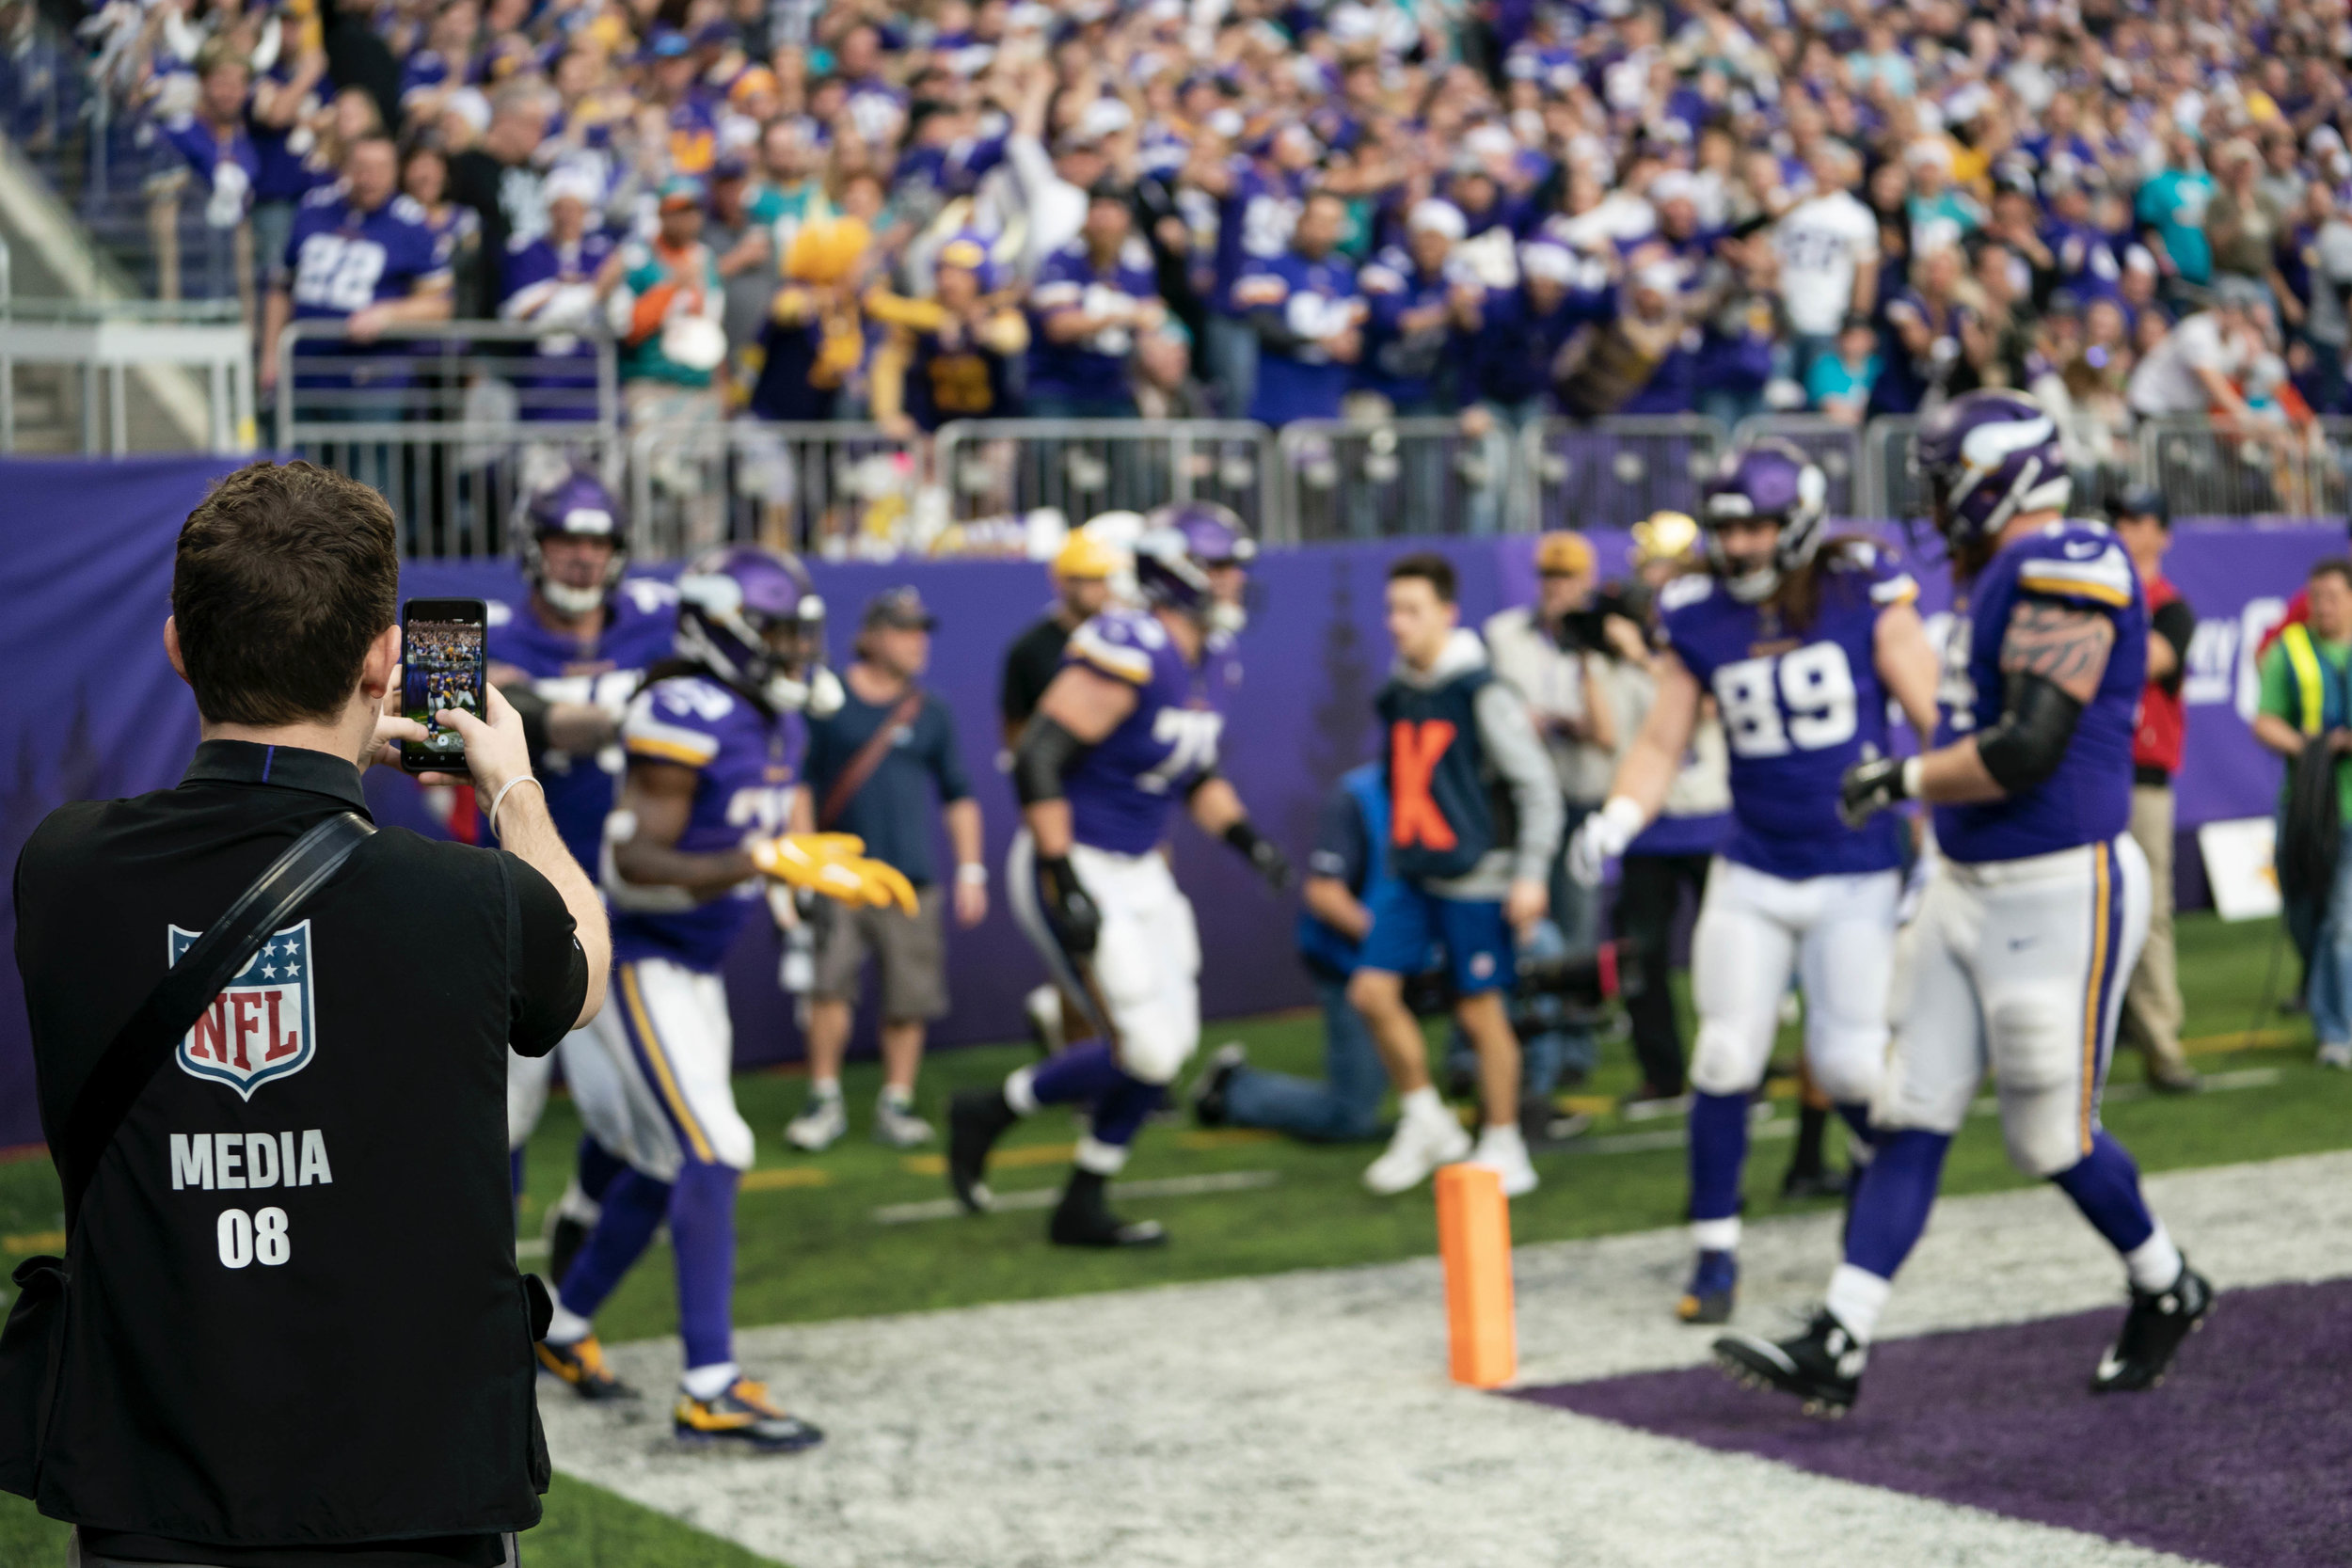 NFL Senior Live Content Correspondent - As the Senior Live Content Correspondent for the Minnesota Vikings, my job is to capture social content (photos, videos, interviews, etc.) requested by the NFL, Minnesota Vikings, and away teams. This content is then shared with the NFL, NFL affiliates, and respective clubs for real-time social media marketing and promotions.